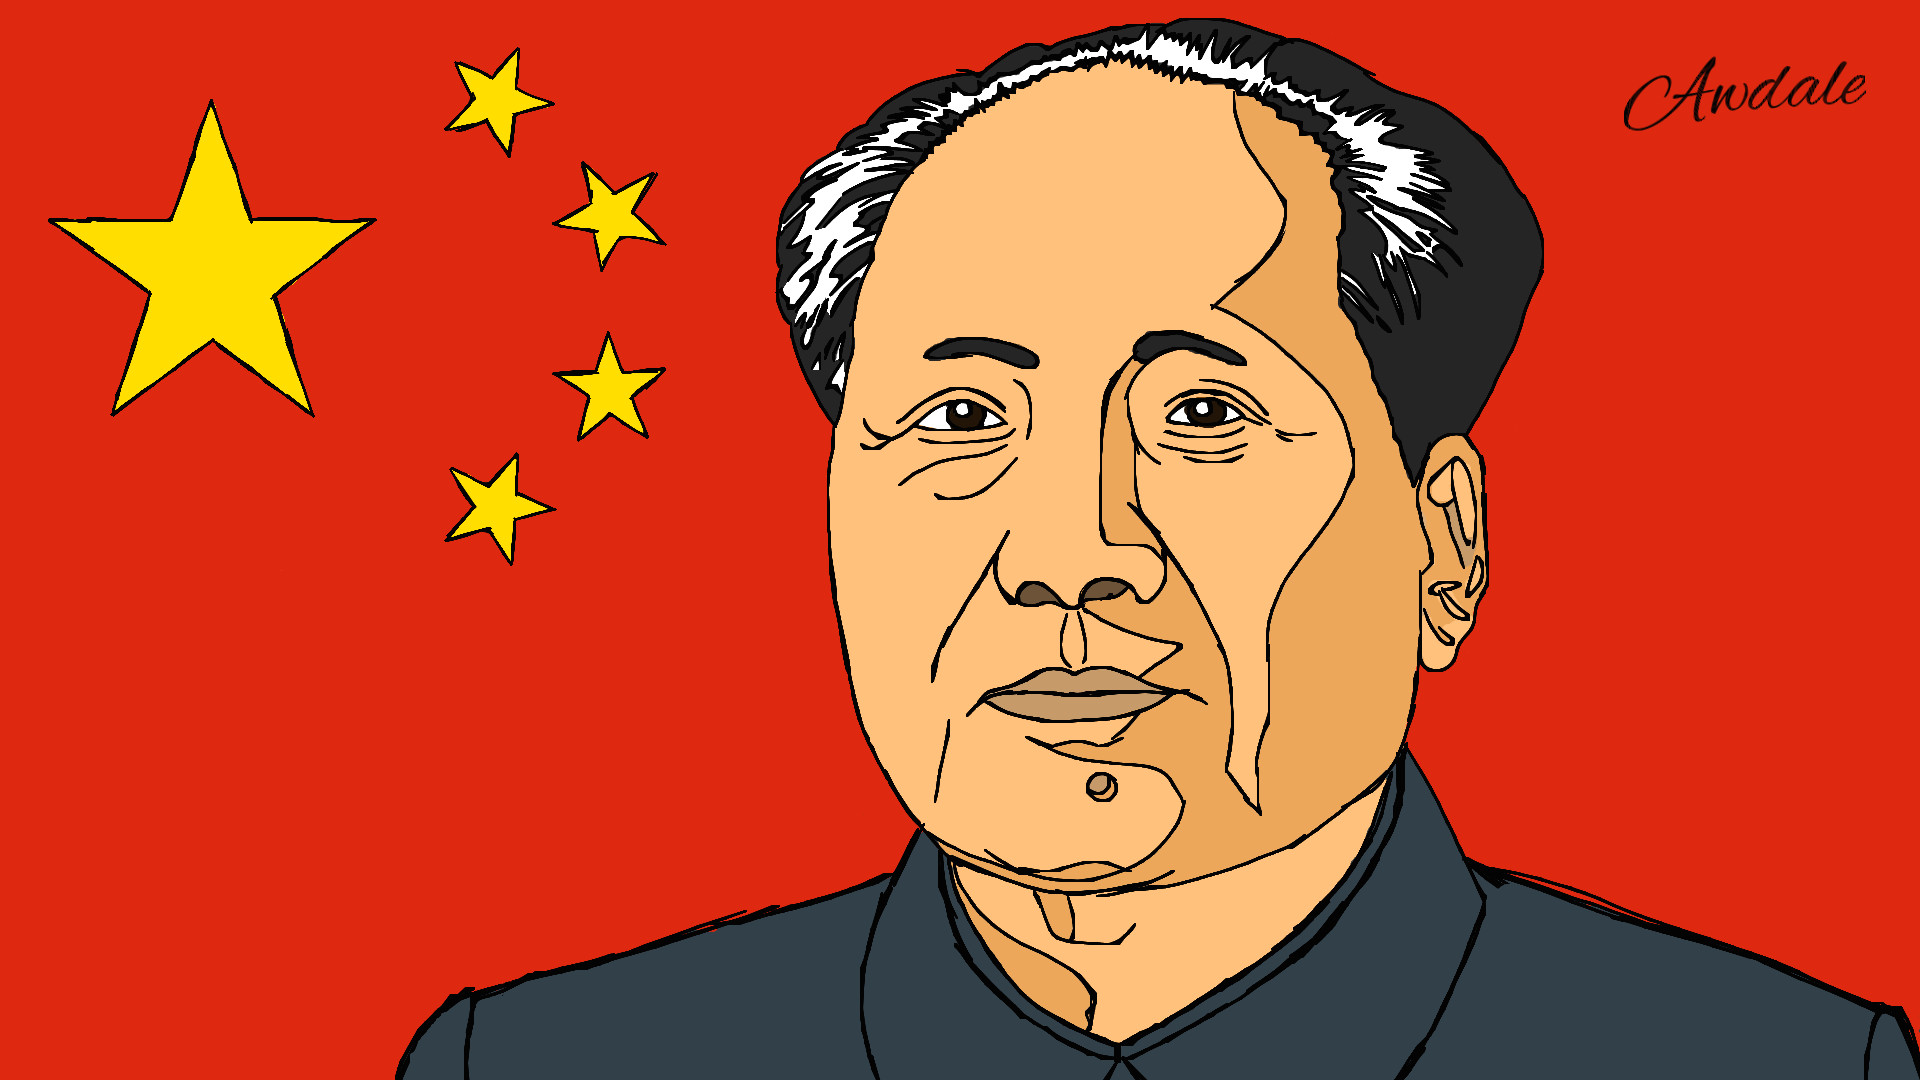 Res: 1920x1080, Mao Zedong by Awdale Mao Zedong by Awdale